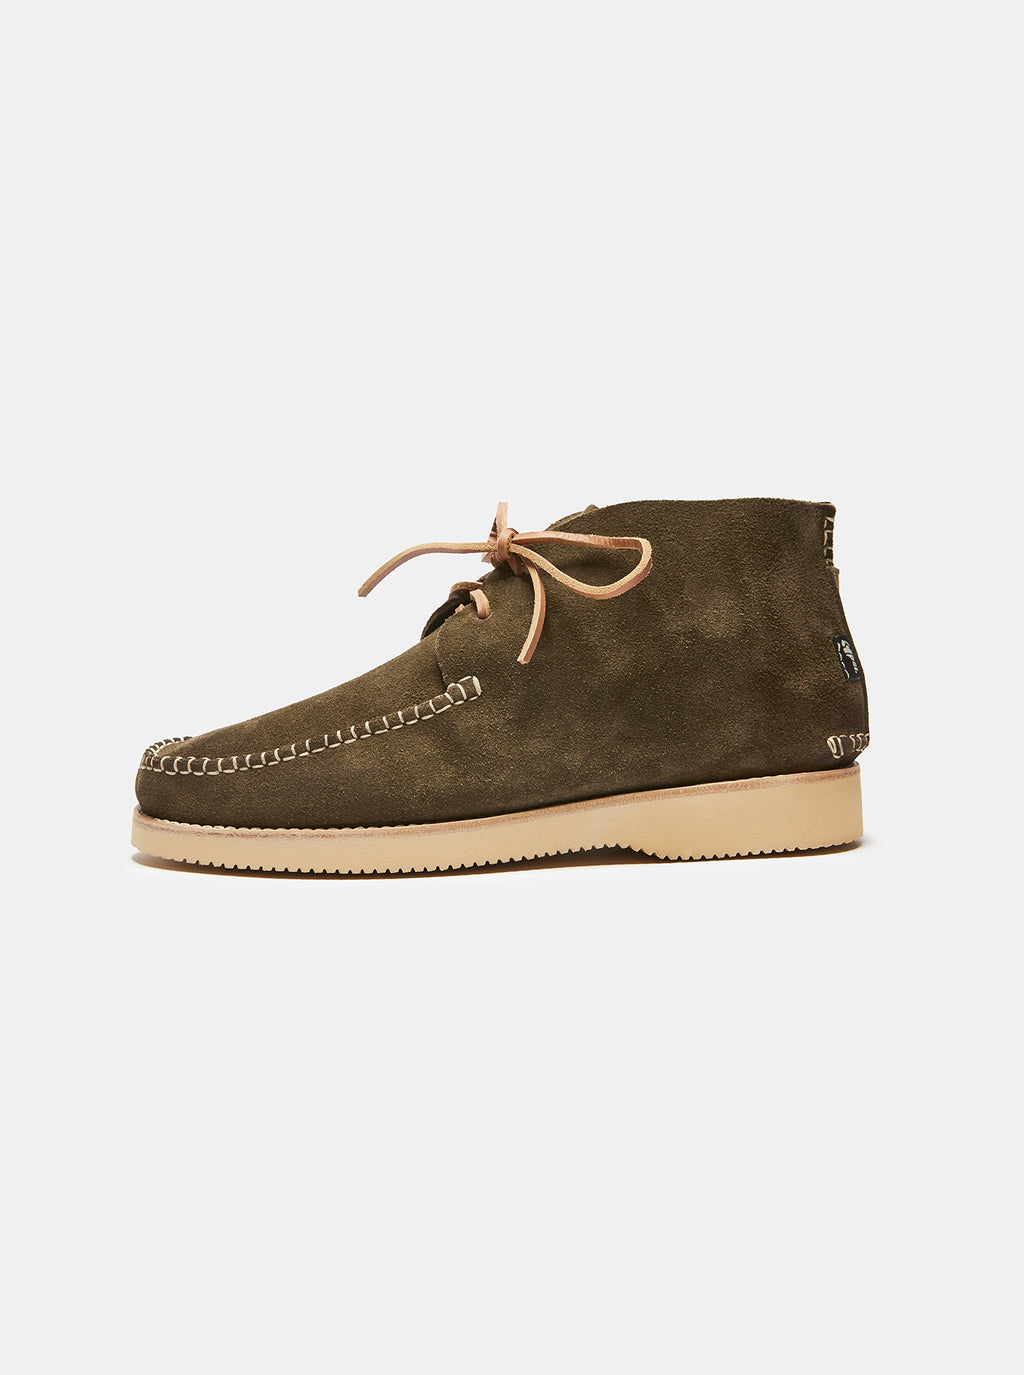 Lucas Suede Moccasin Boot Olive